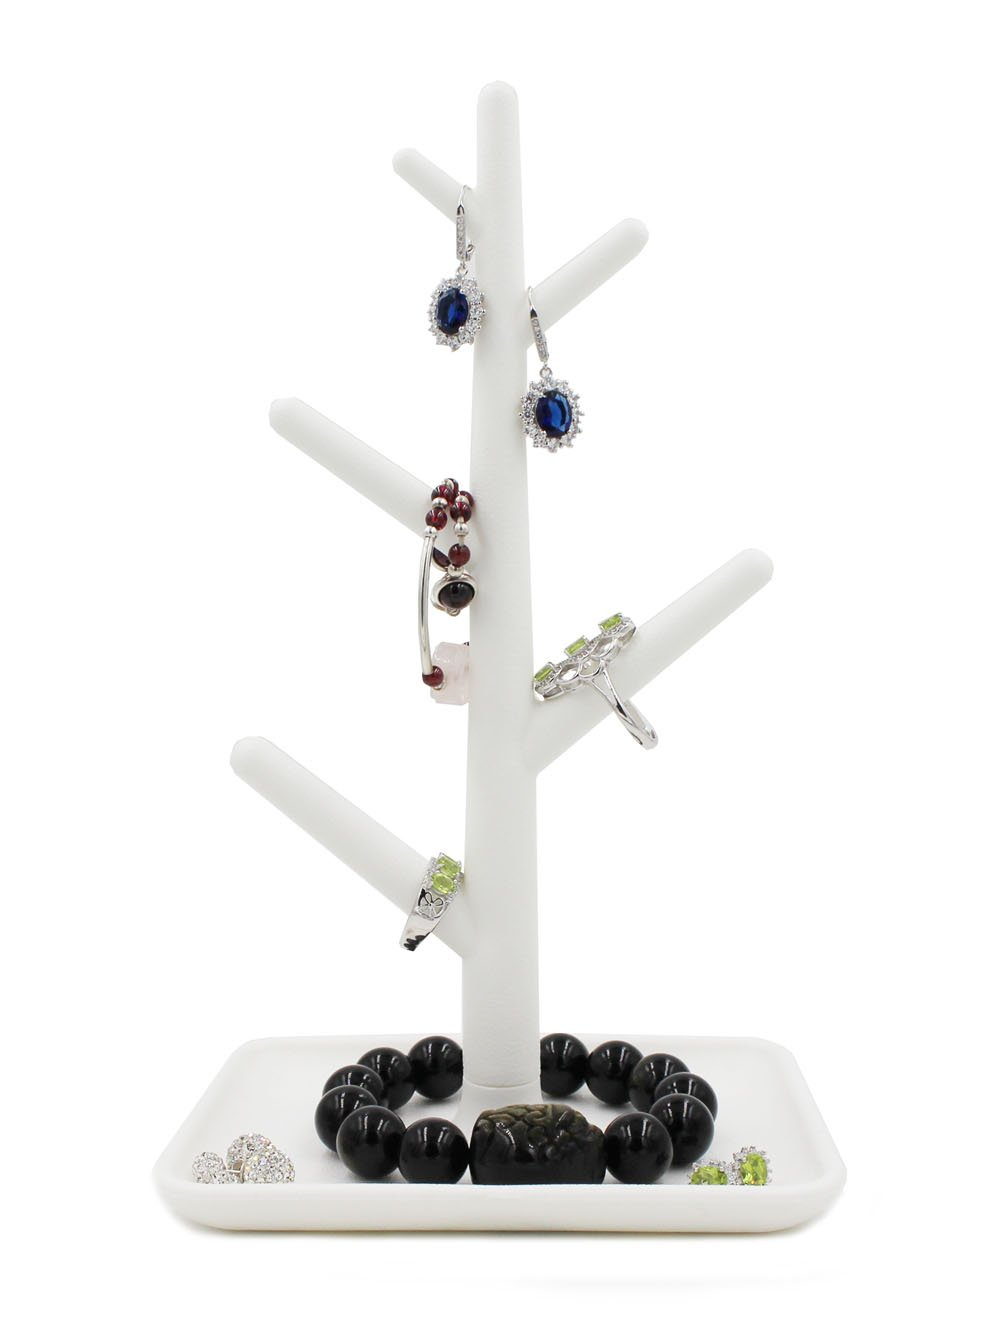 Eyotool Jewelry Tree Organizer Rack Display Tower Stand Holder Organizer Dish Tray for Earrings Necklace Ring (White)